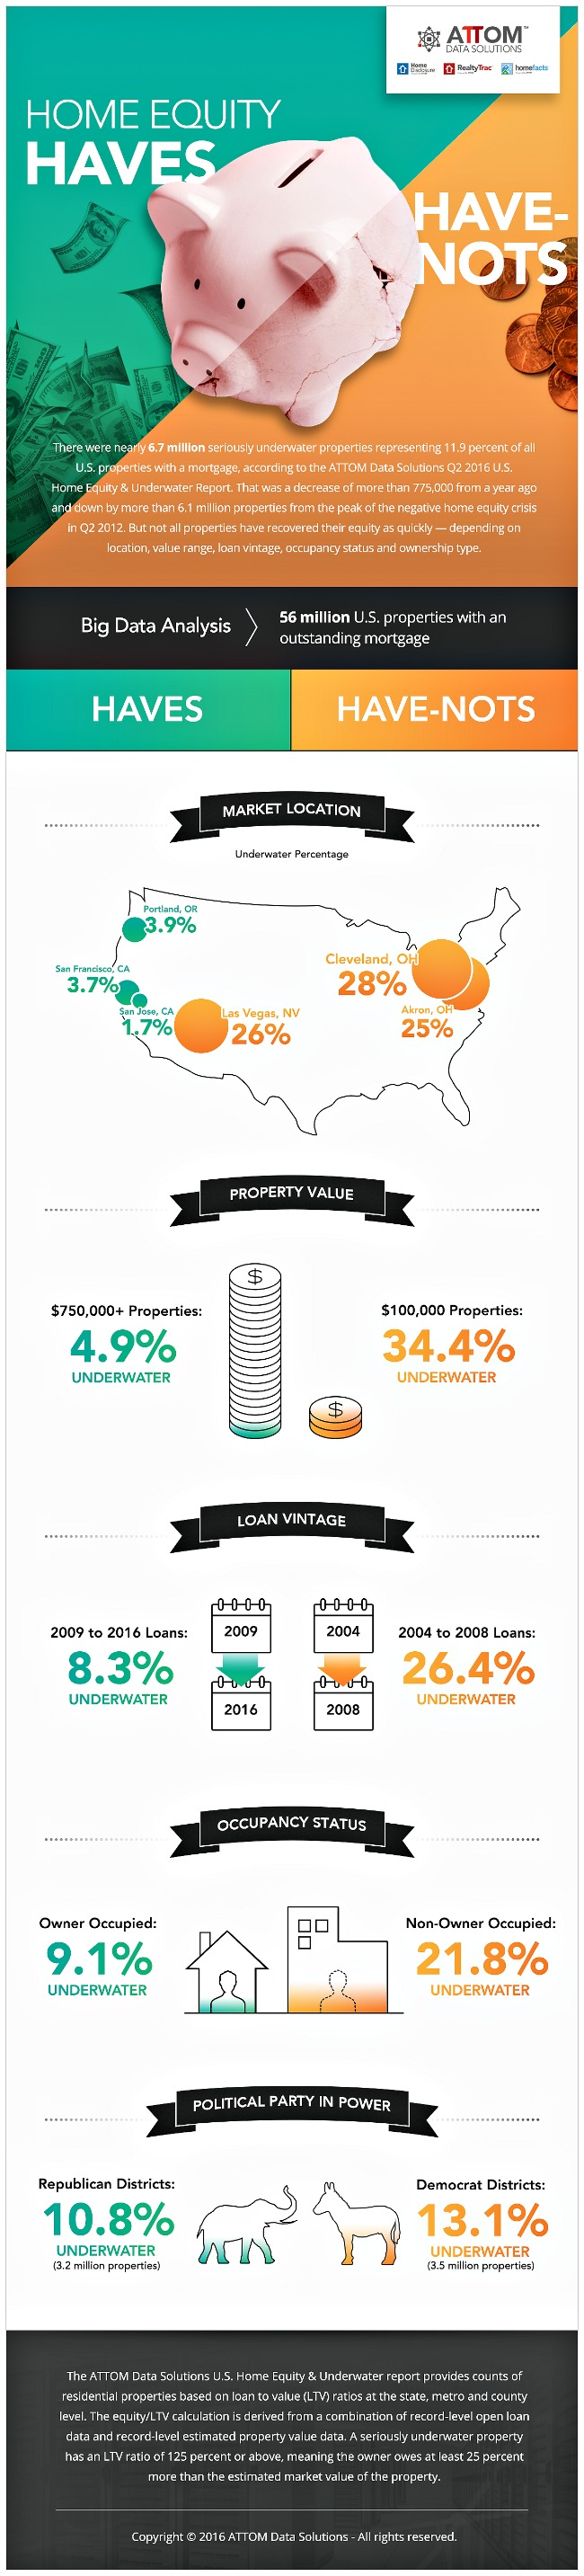 Inforgraphic highlighting the problems for homeowners who owe more than property value